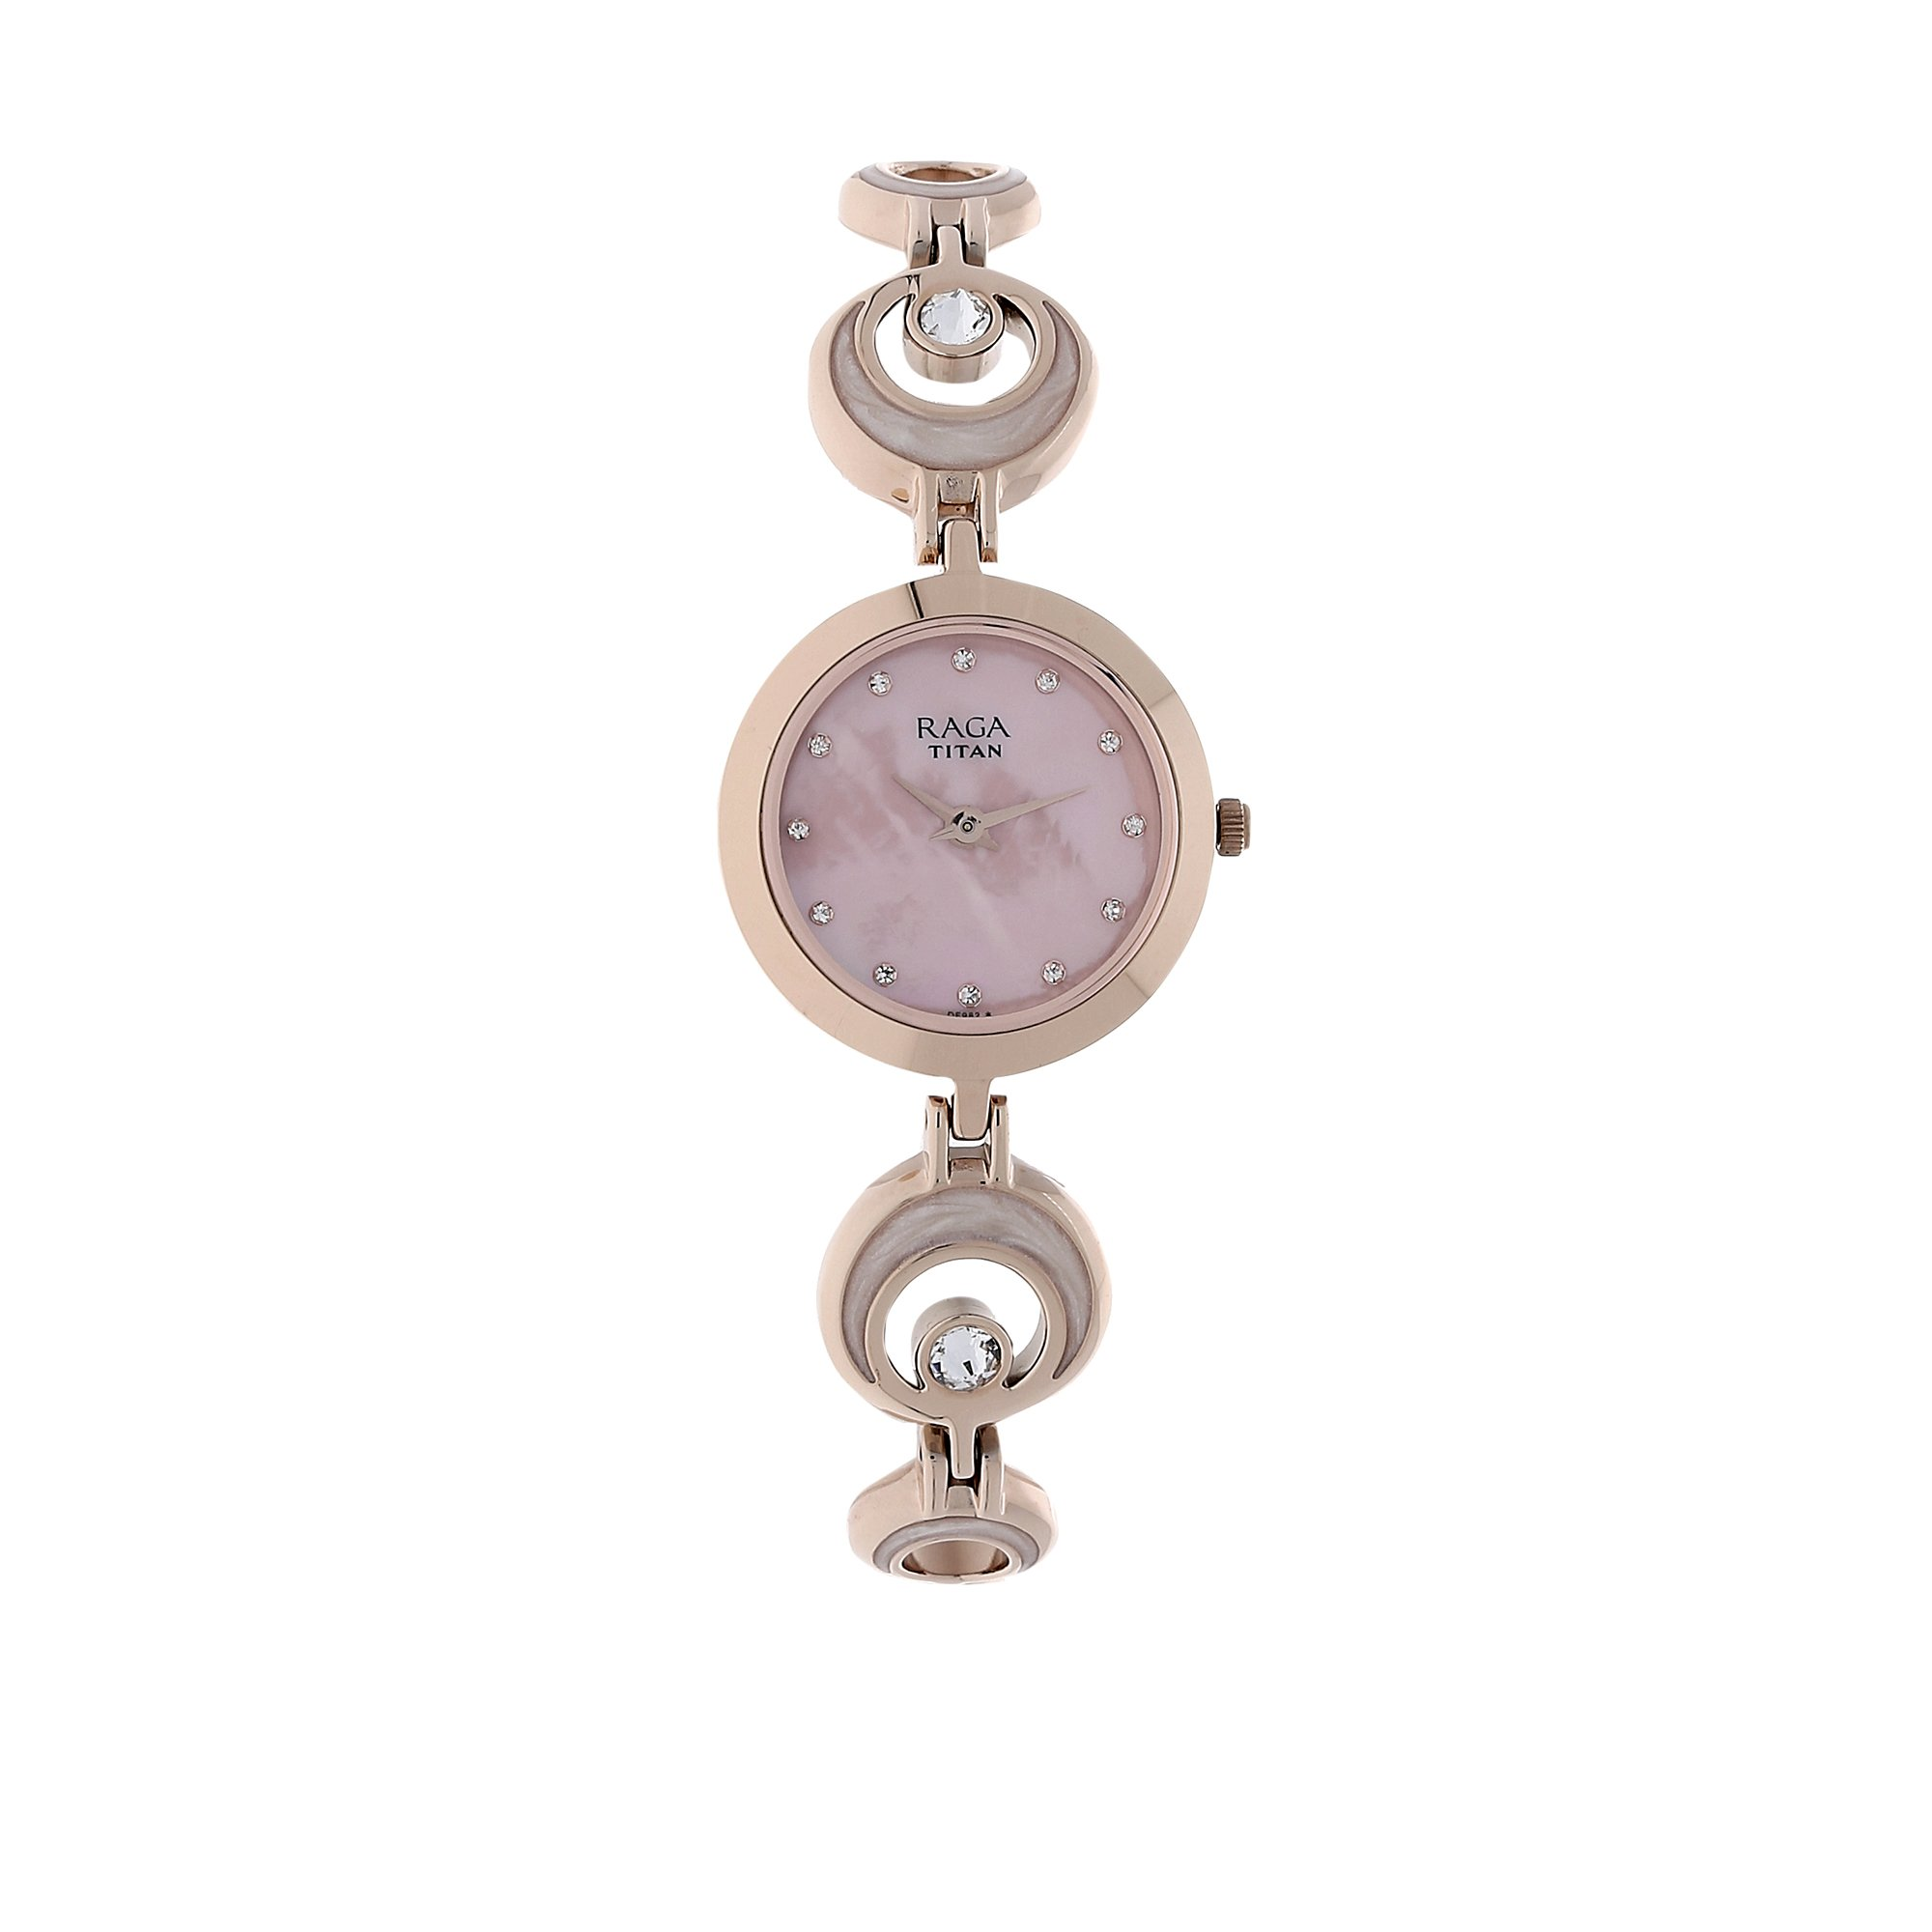 Titan Raga Aurora ,Swarovski Crystal, Mother of Pearl Dial, Gold/Silver/Brass Metal, Jewellery Design, Bracelet Style,Buckle Clasp Designer, Quartz Glass, Water Resistant Wrist Watch